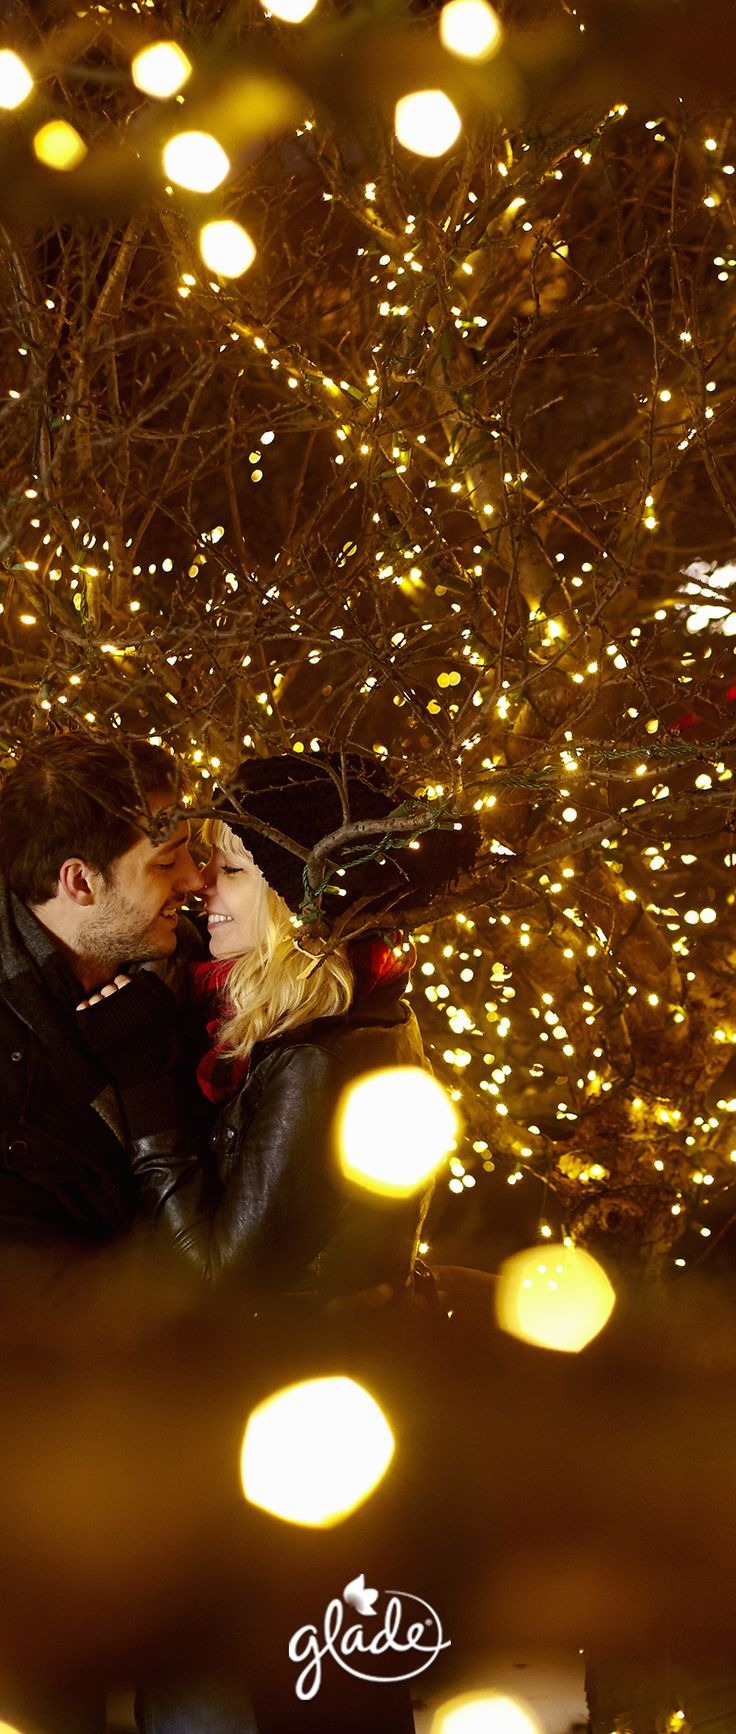 Twinkling lights. Mittened hands holding warm apple cider. A special moment between just the two of you. Choose the brightest feeling of them all with our Cherish the Present scent. Feel Joy. Feel Glade.